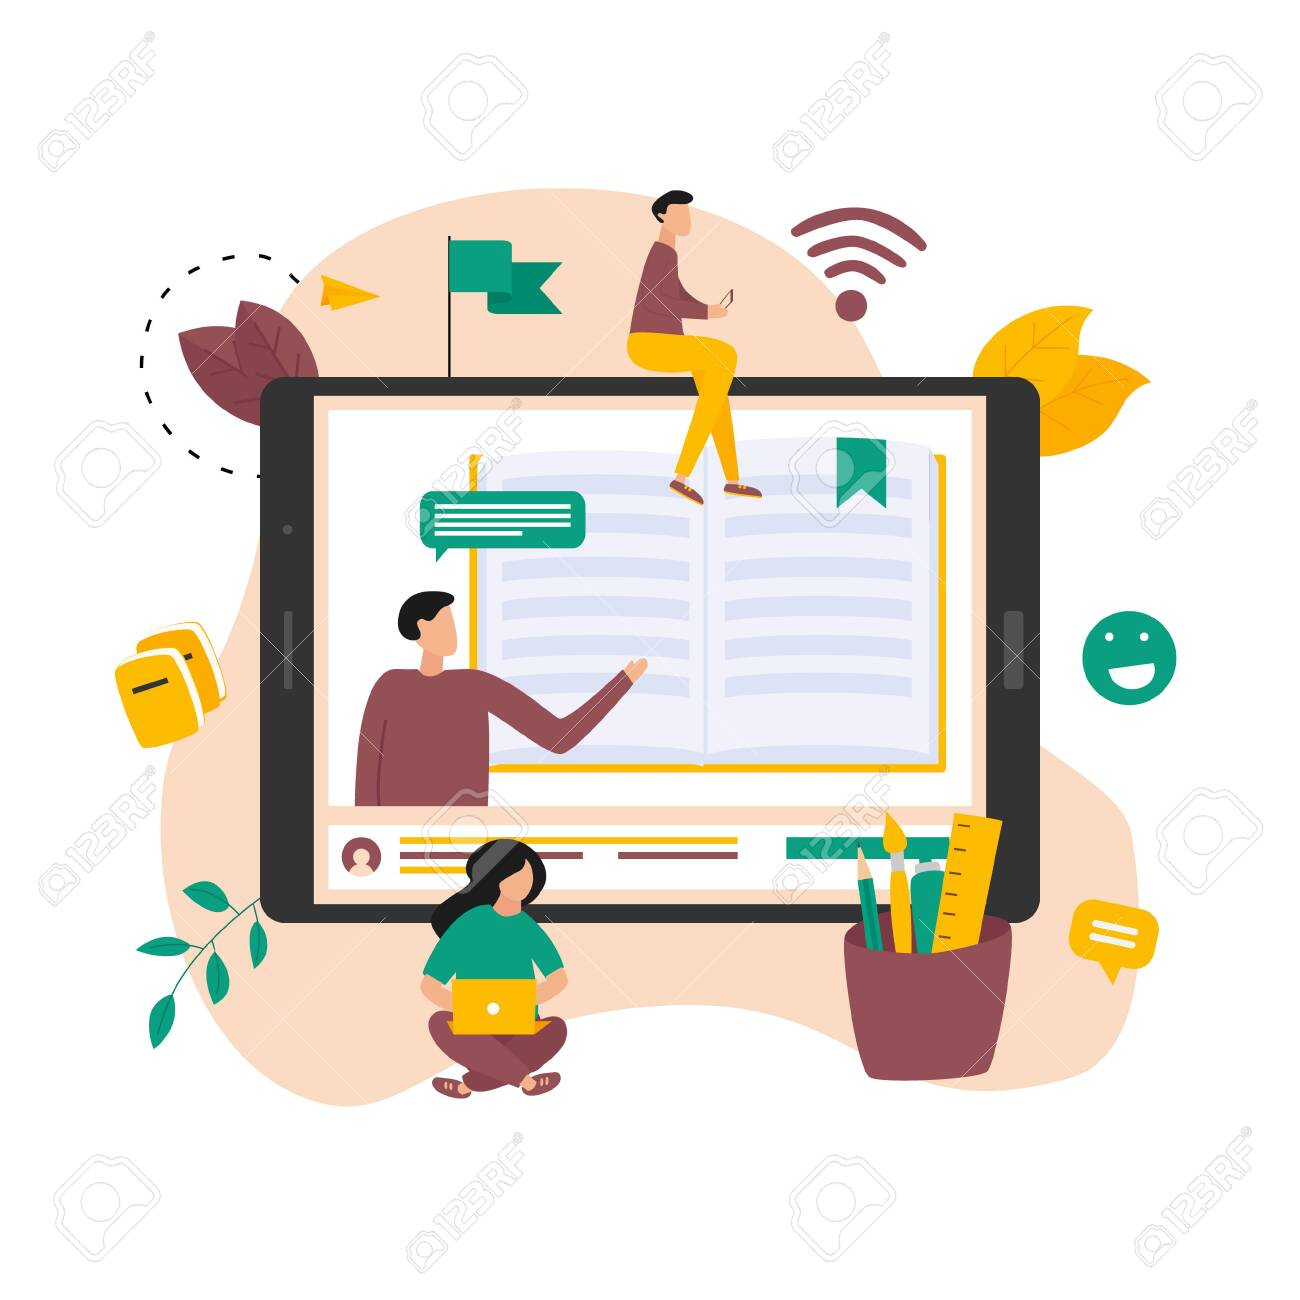 Online education, home schooling and e-learning concept. Online learning at home in social distancing COVID-19. Vector illlustration - 152781127